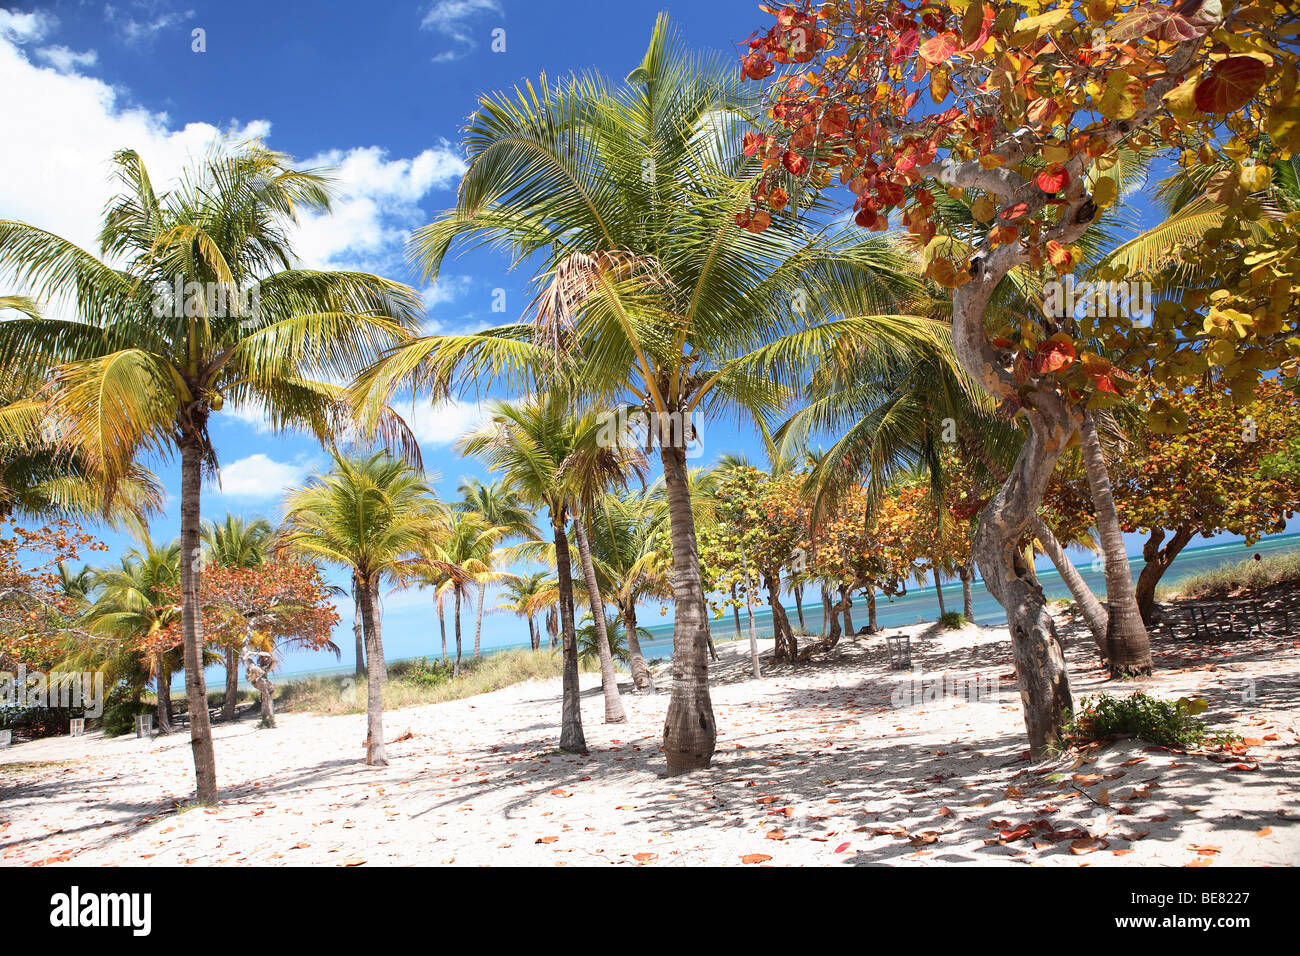 Crandon Park Photos   Crandon Park Images - Alamy c9918a992a9